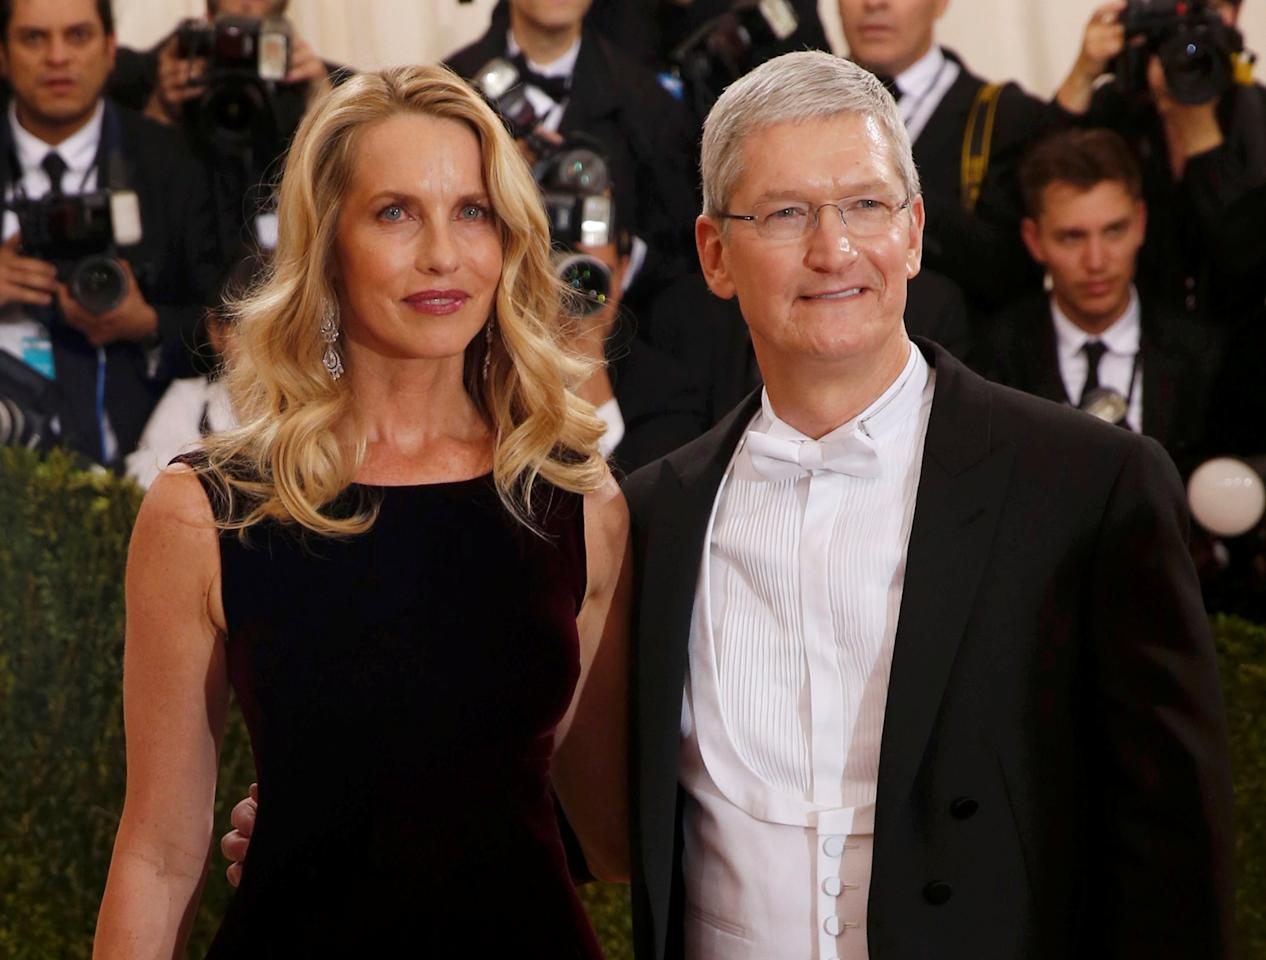 "Apple CEO Tim Cook and Steve Jobs' widow Laurene Powell arrive at the Metropolitan Museum of Art Costume Institute Gala (Met Gala) to celebrate the opening of ""Manus x Machina: Fashion in an Age of Technology"" in the Manhattan borough of New York, May 2, 2016. REUTERS/Lucas Jackson TPX IMAGES OF THE DAY"